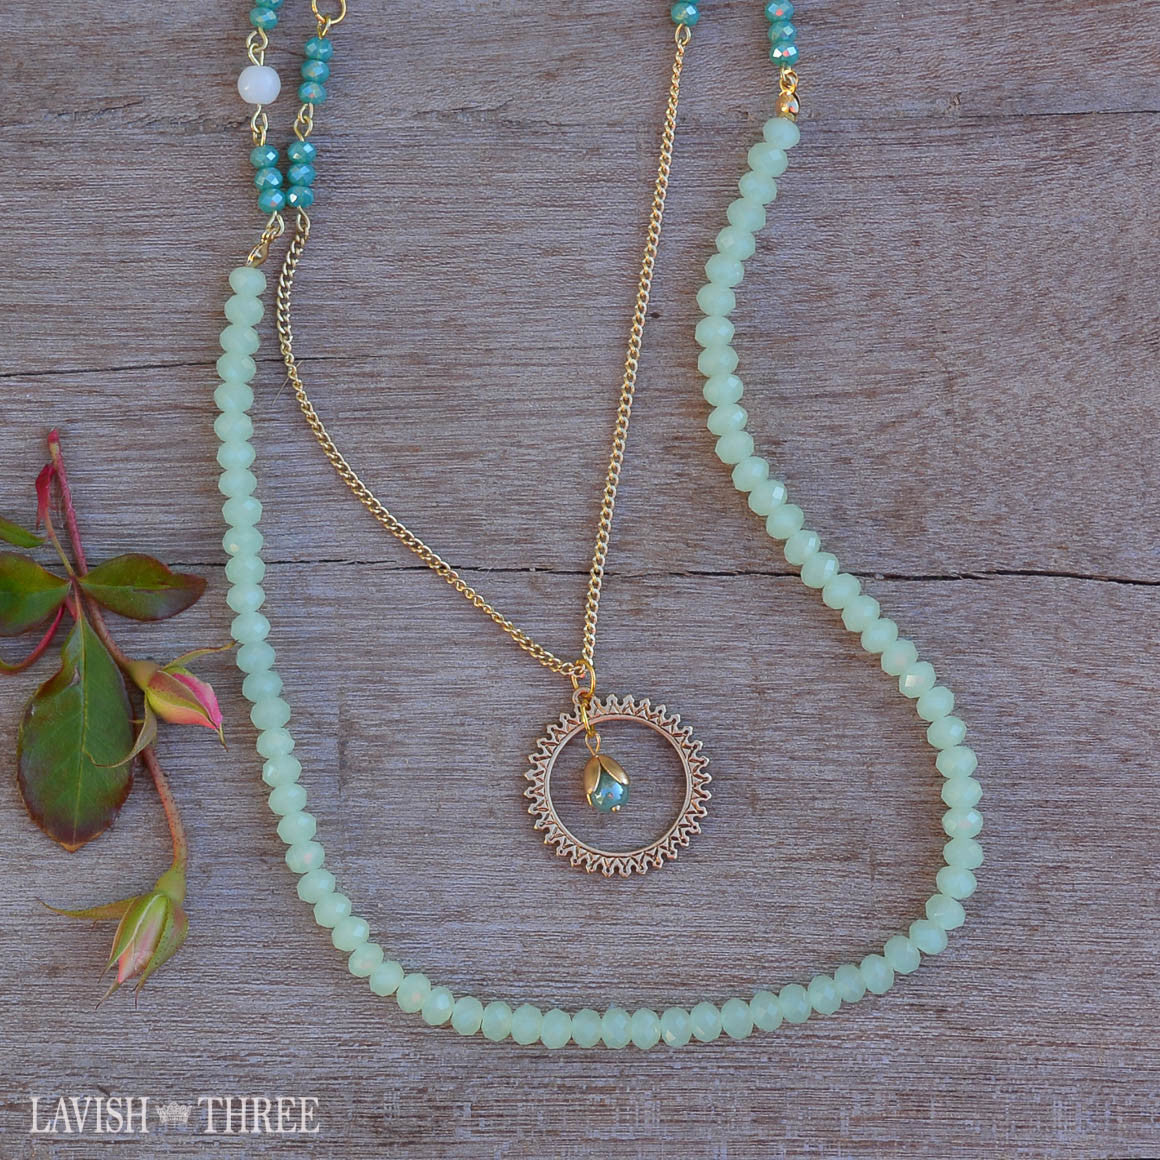 Harvest gold chain necklace, blue and green beads